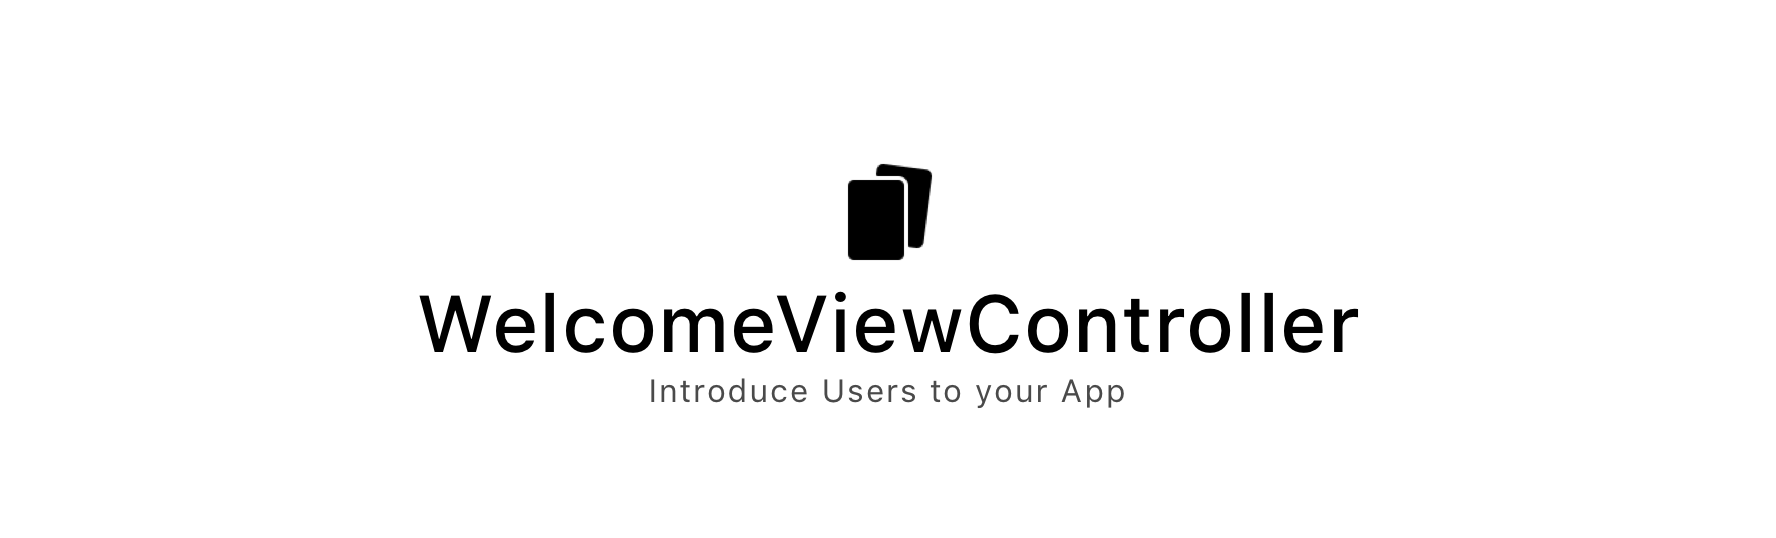 WelcomeViewController